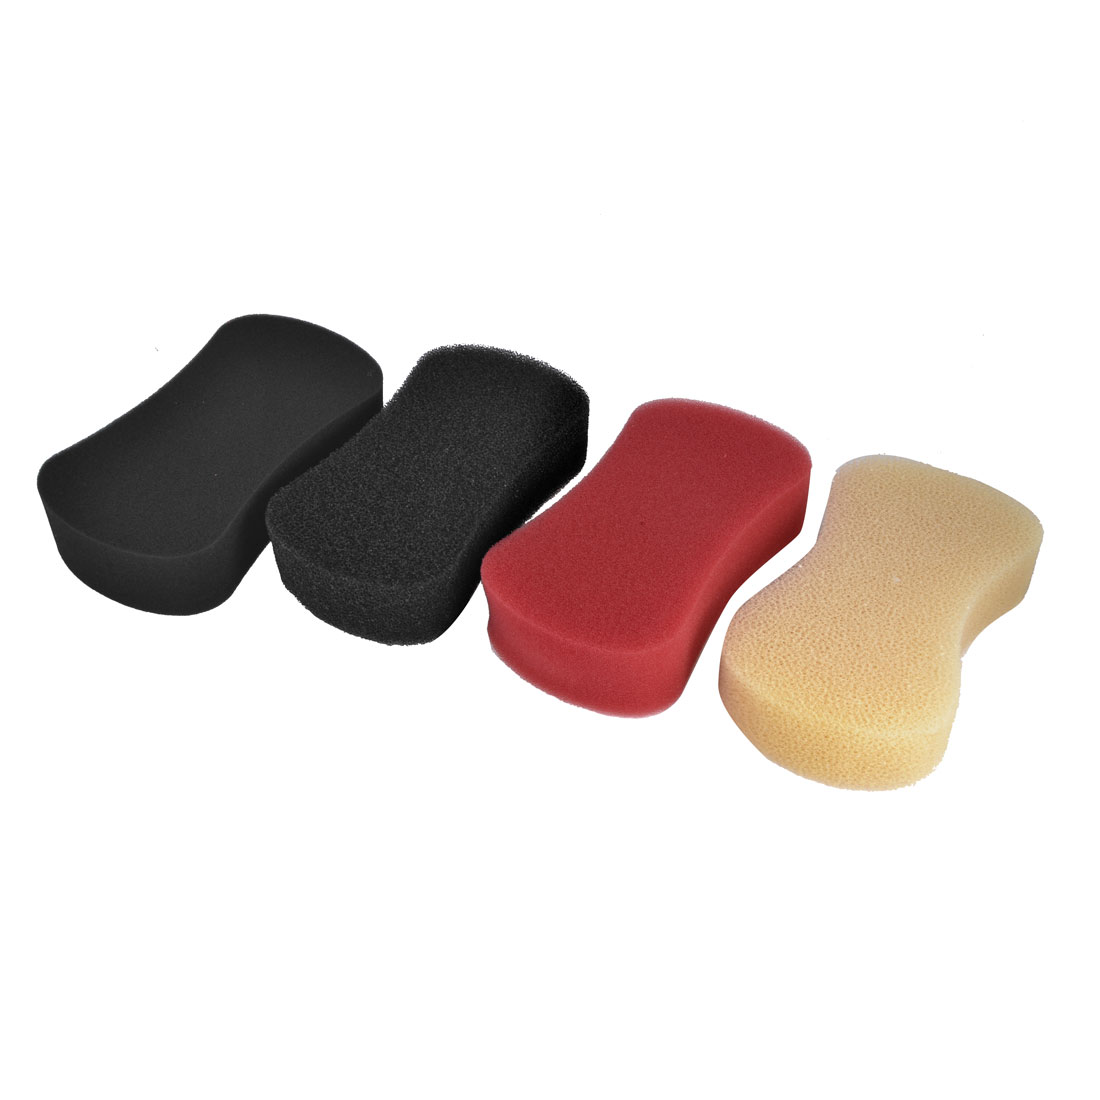 4 Pcs Car Colorful Soft Cleaning Washing Sponge Cleaner Pad 20 x 11.5 x 5cm